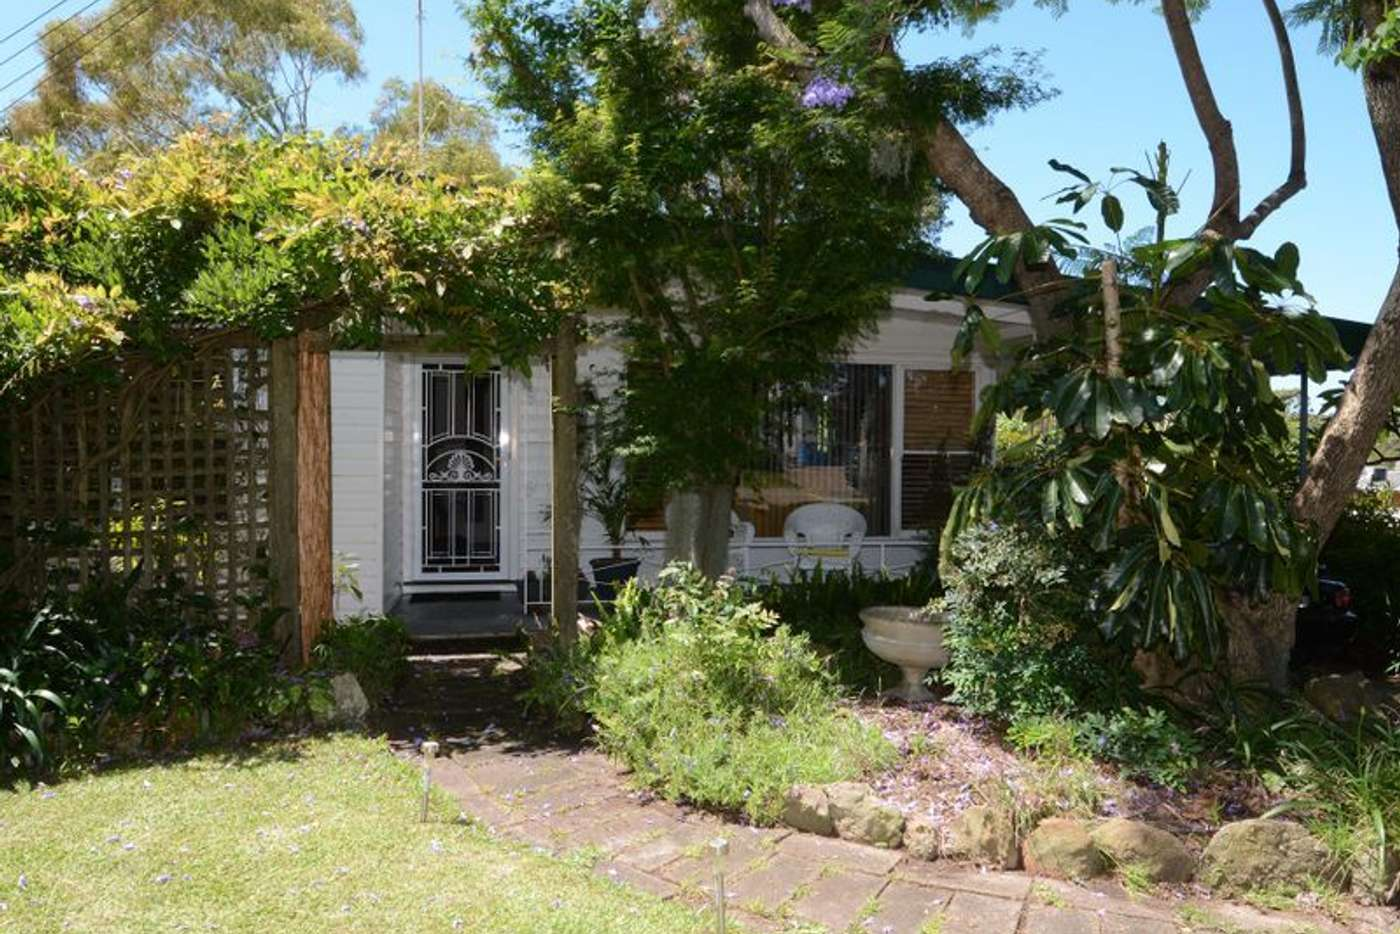 Main view of Homely house listing, 2 Secret Corner Road, Rathmines NSW 2283